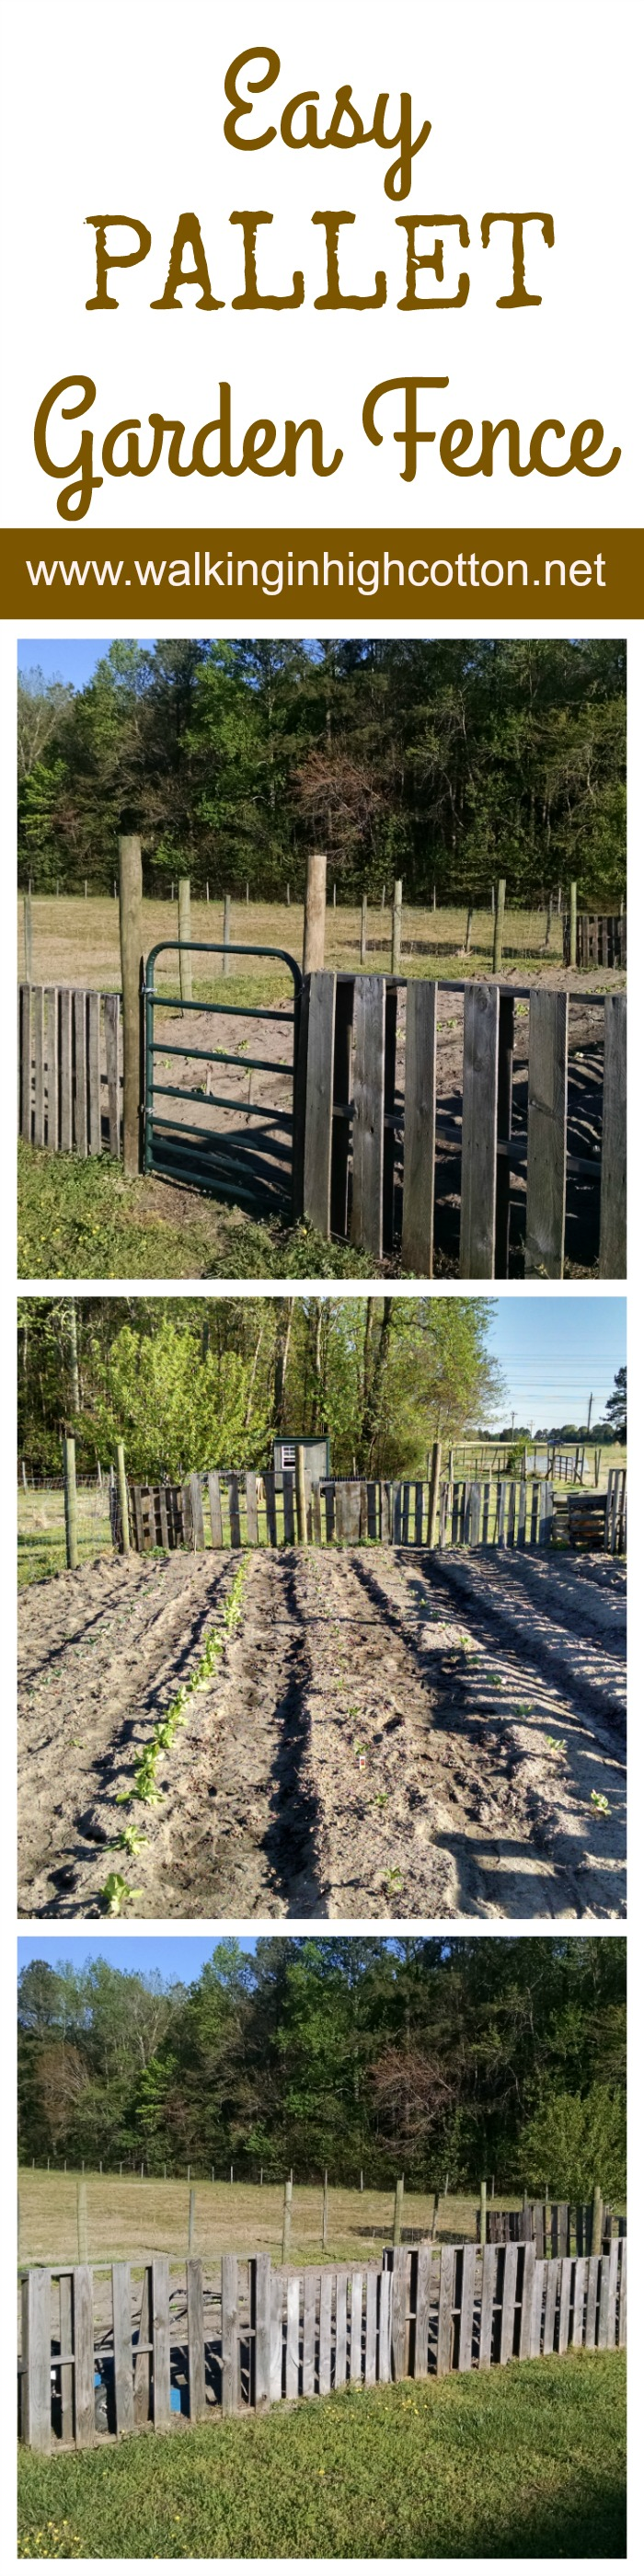 Building an easy, one-day garden fence out of pallets and wire. (at www.walkinginhighcotton.net)